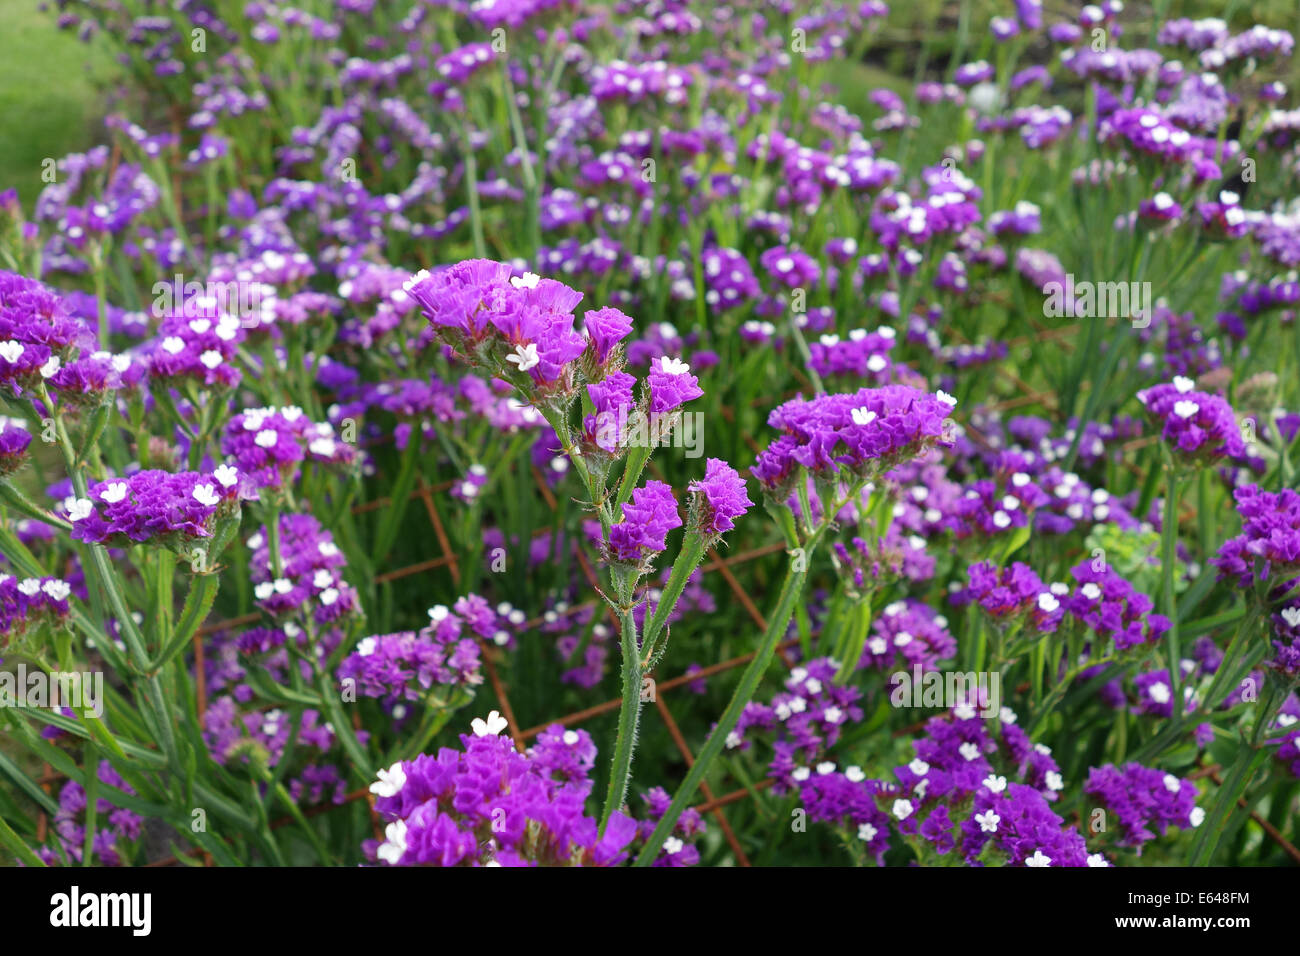 Limonium sinuatum commonly known as wavyleaf sea-lavender Uk - Stock Image